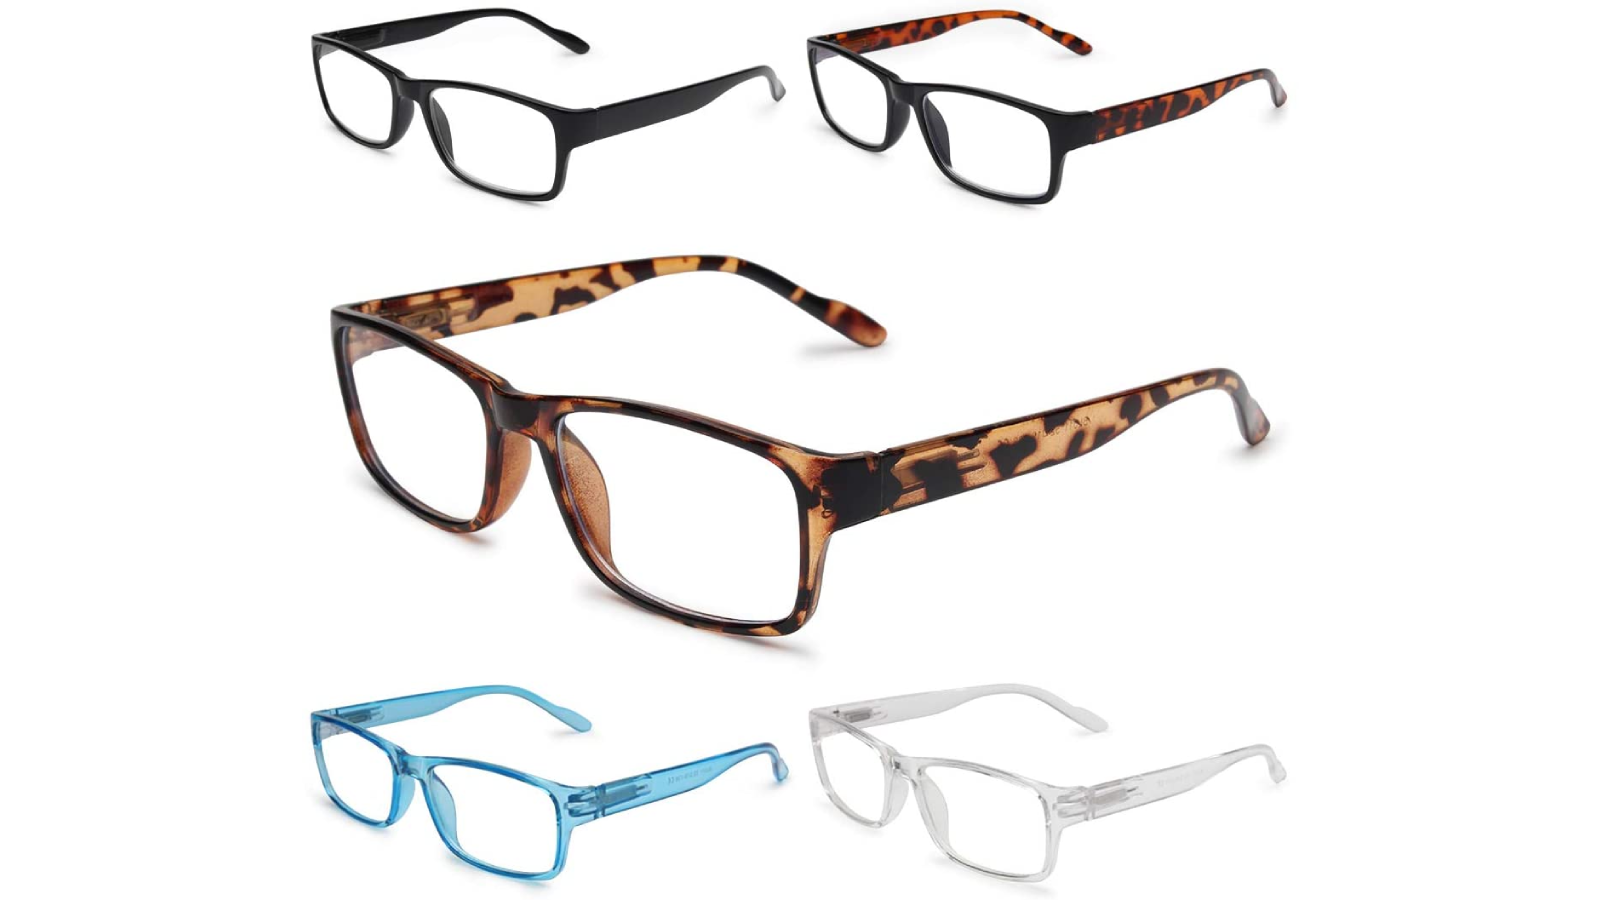 Five pairs of glasses, different color frames